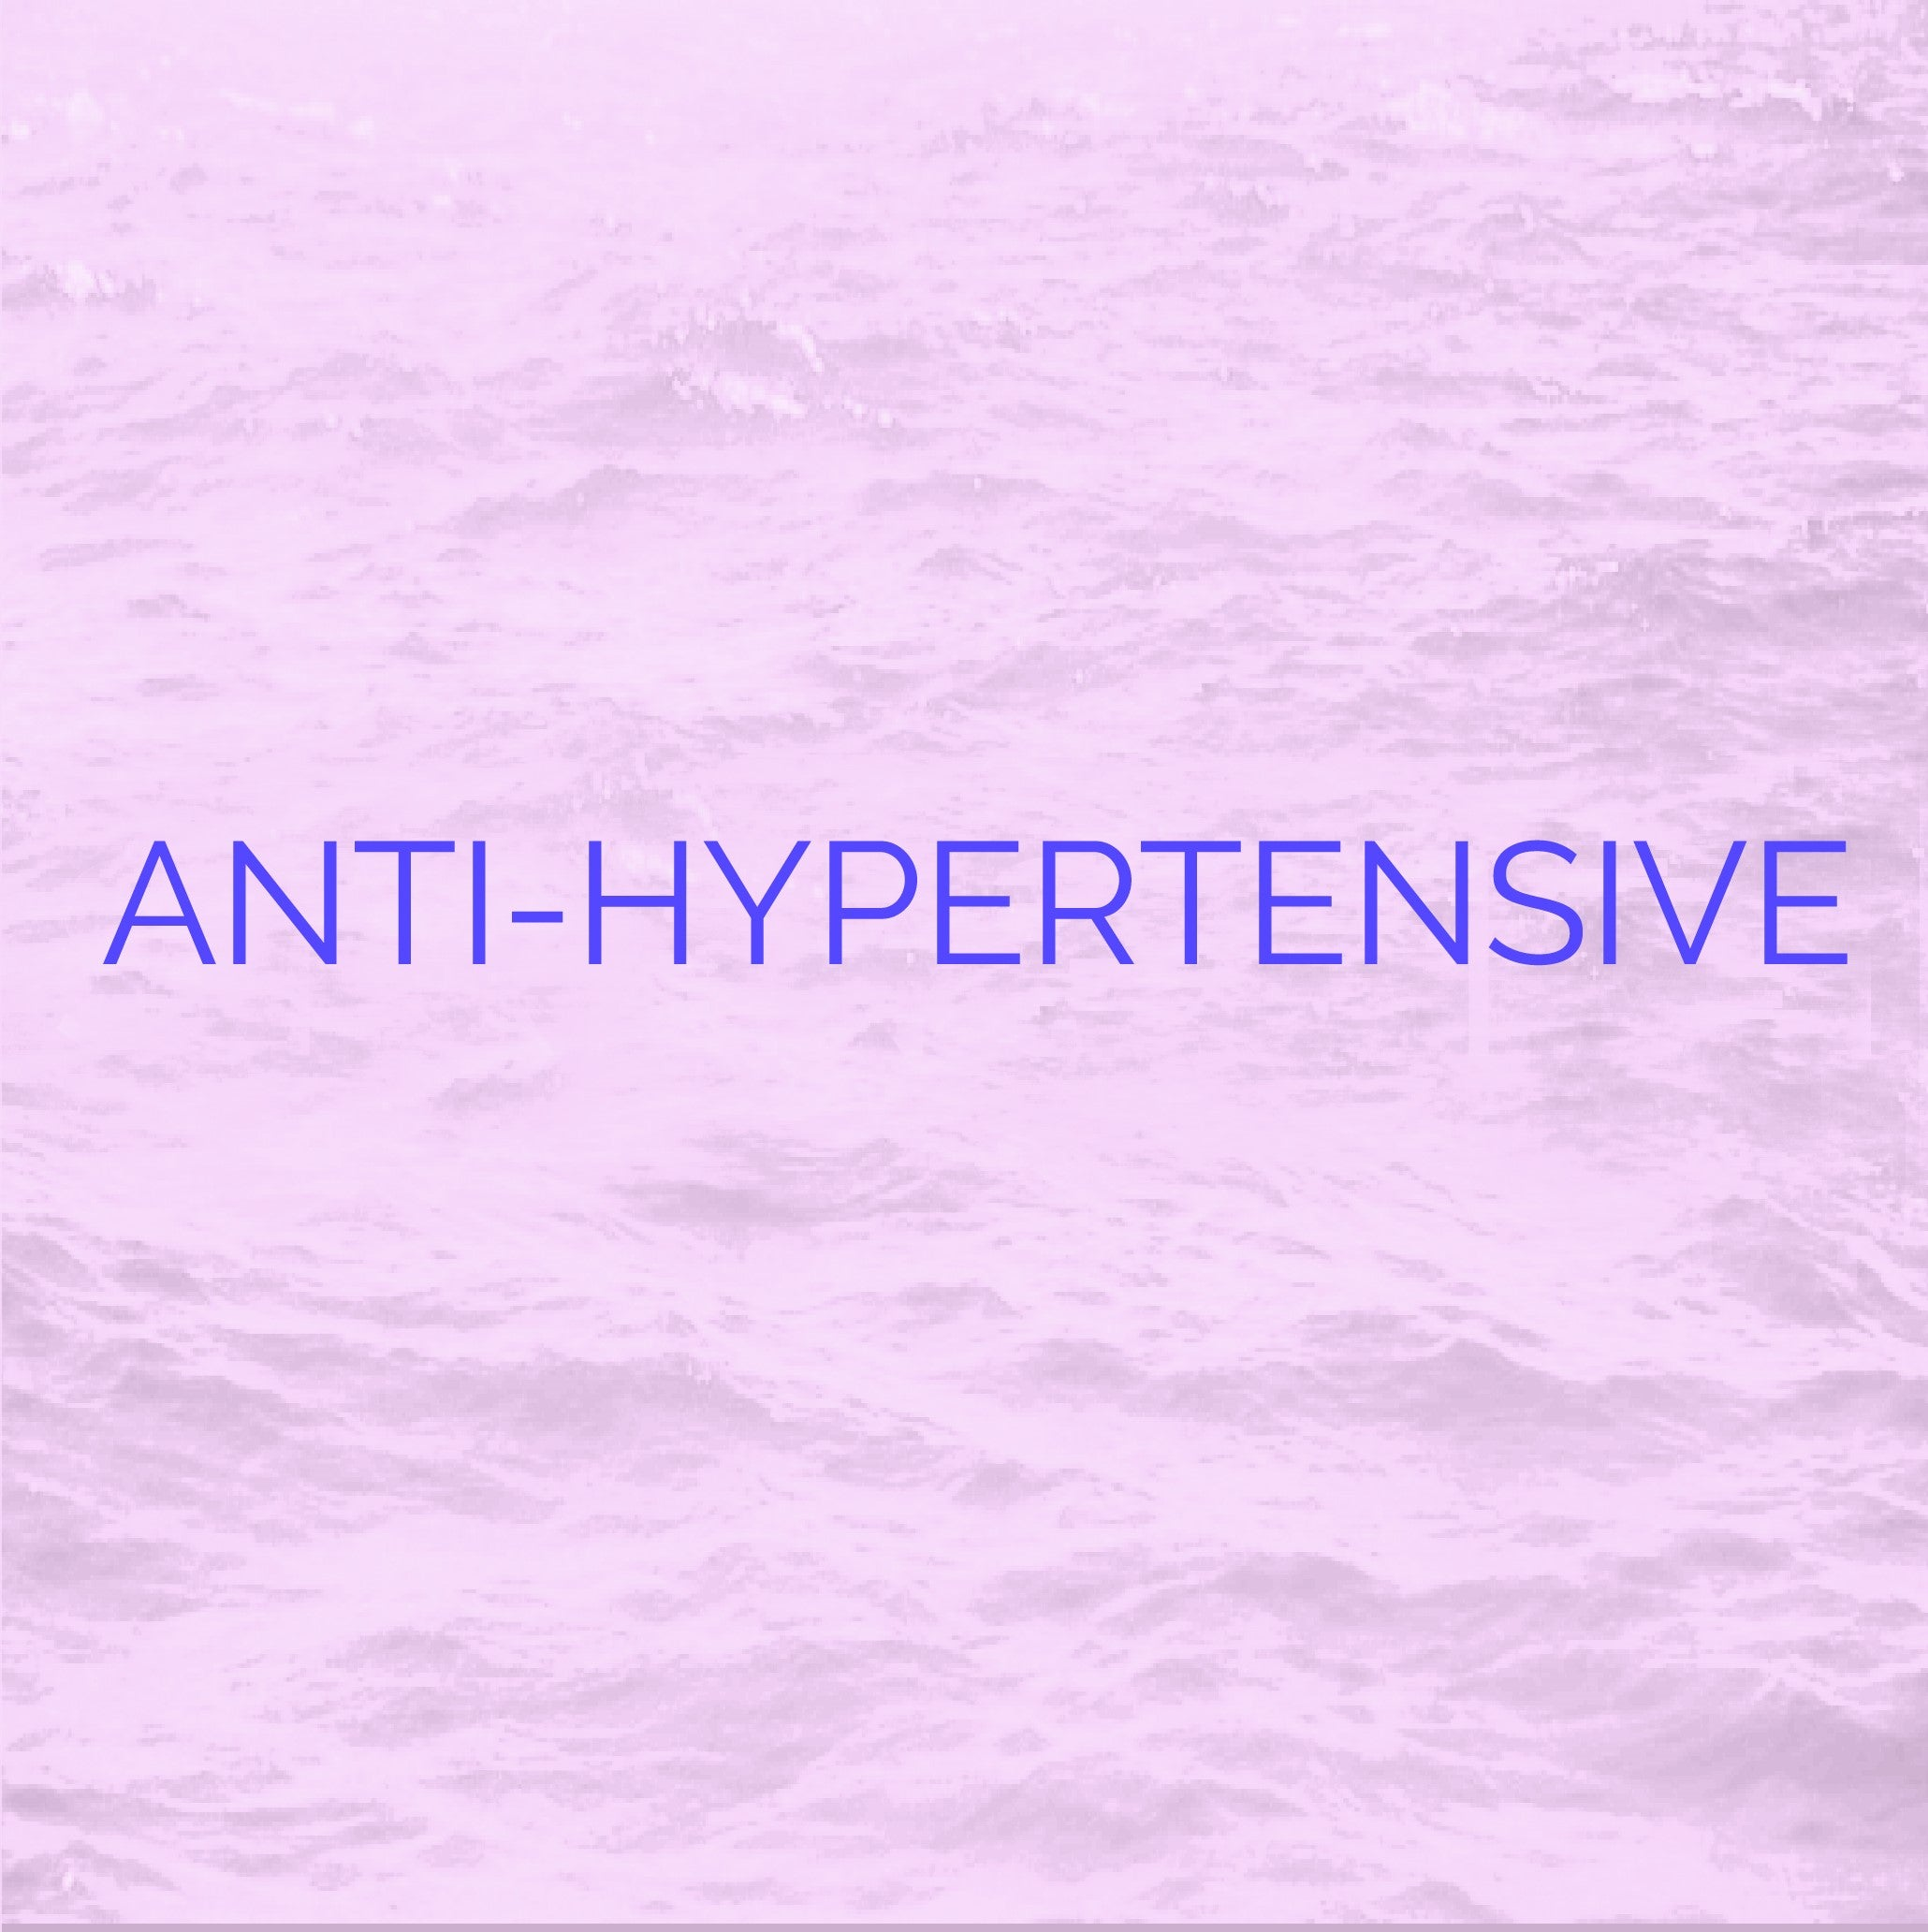 An icon representing Anti-Hypertensive